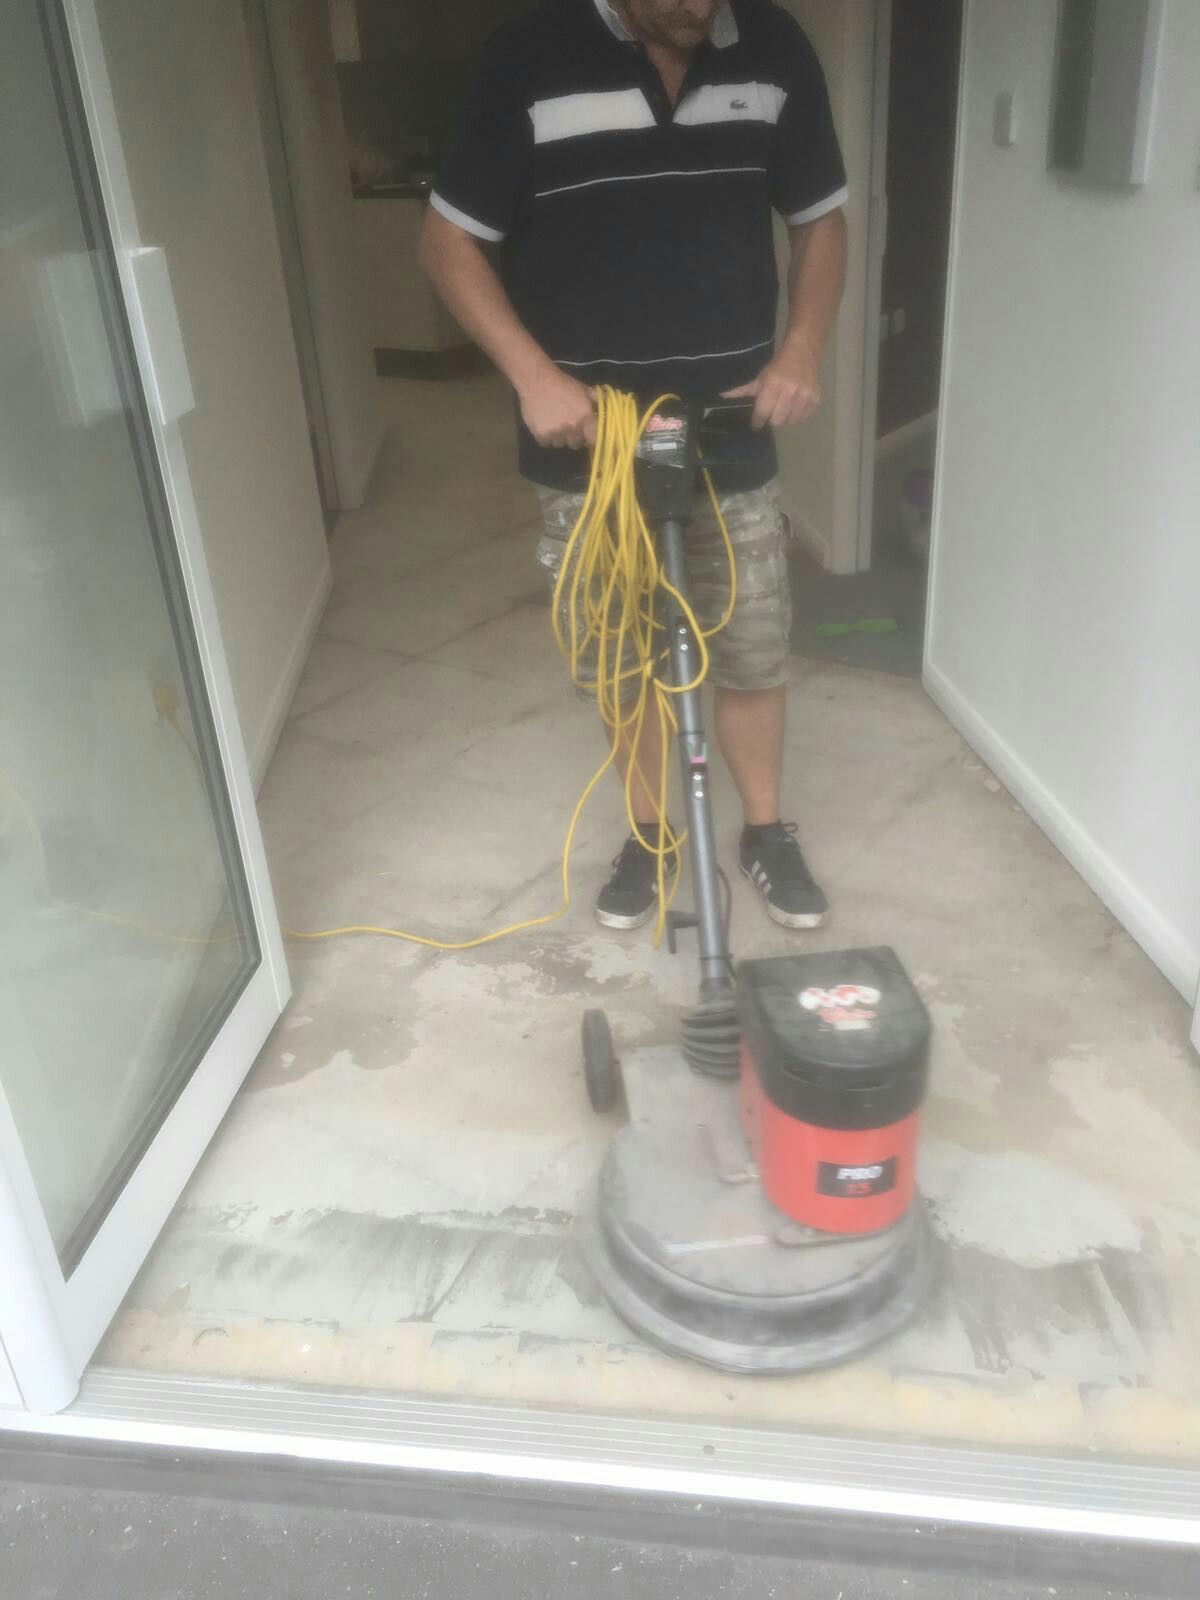 After The Screed The Floor Is Buffed Office Flooring Carpet Tiles - Buffing ceramic tile floors